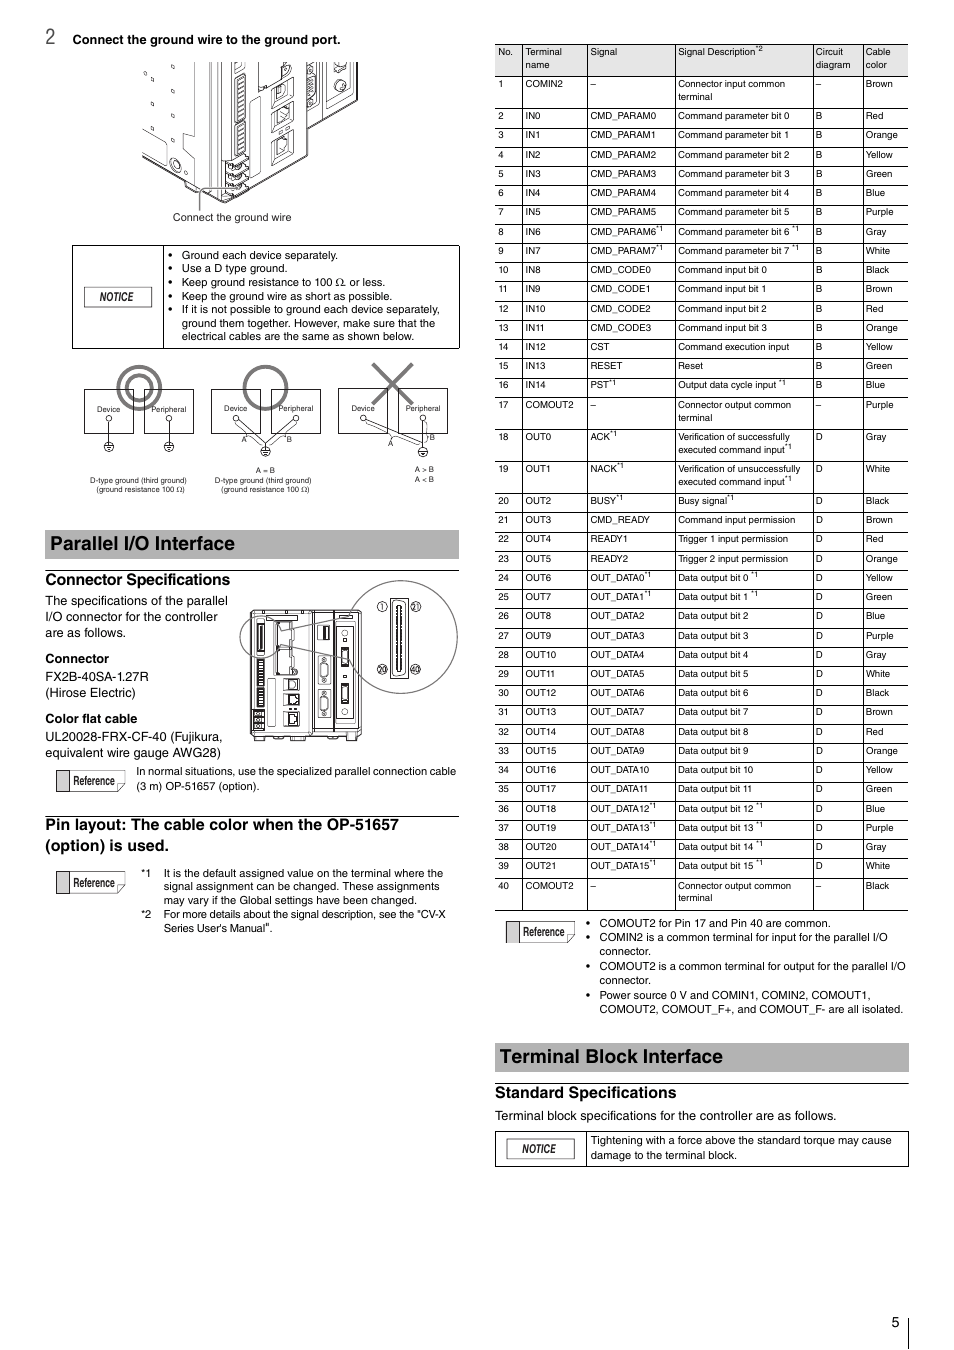 6 Connector Wiring Diagram Parallel I O Interface Connector Specifications Terminal